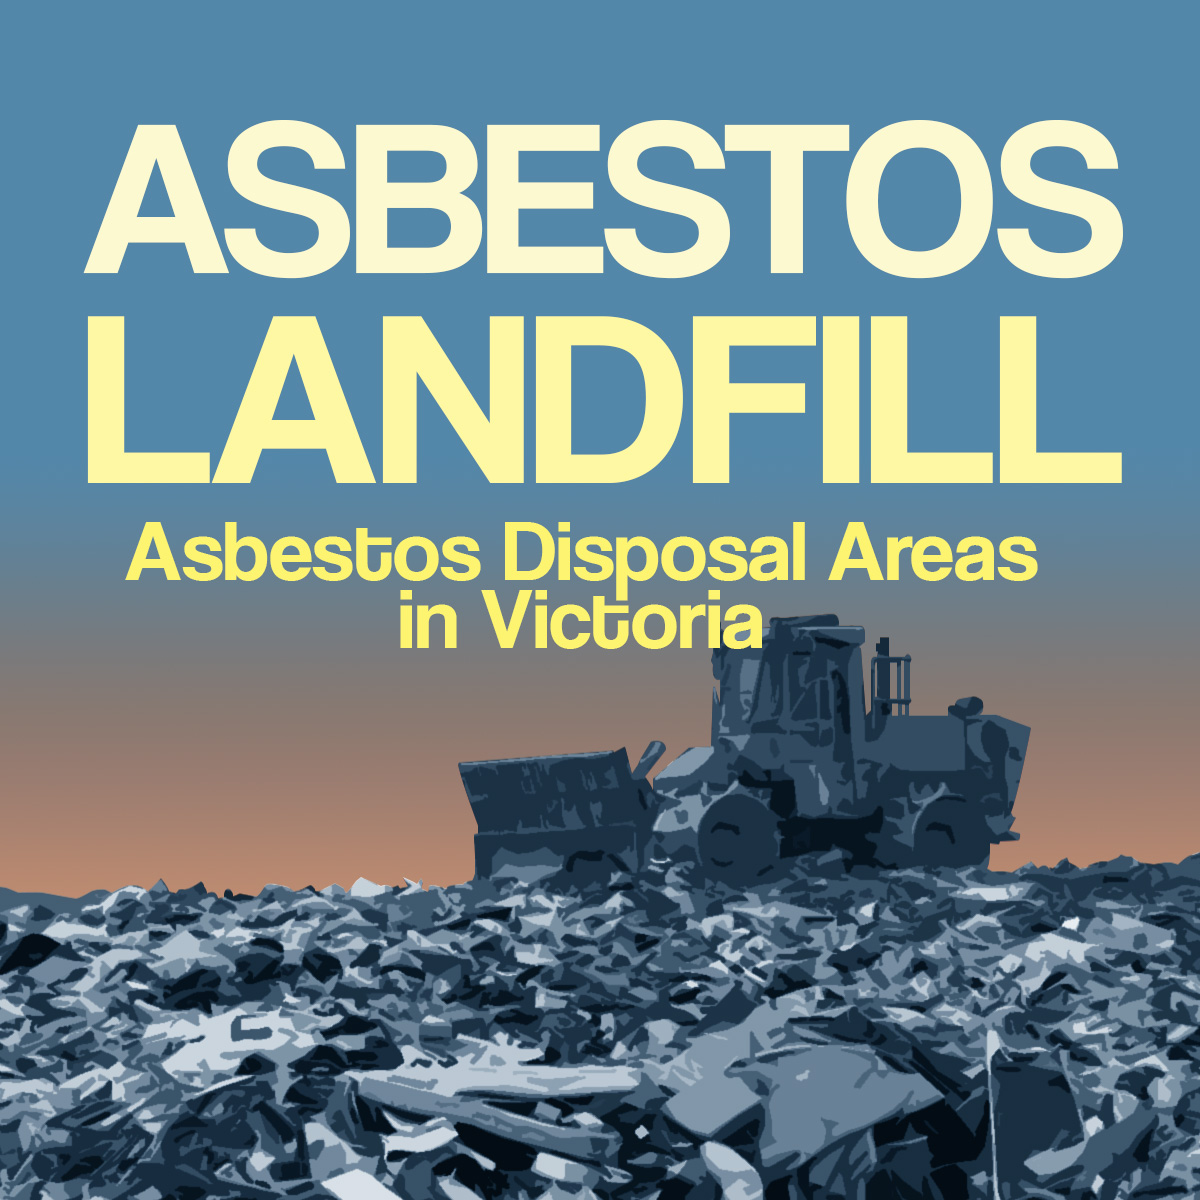 Asbestos Landfill/Asbestos Disposal Areas in Victoria